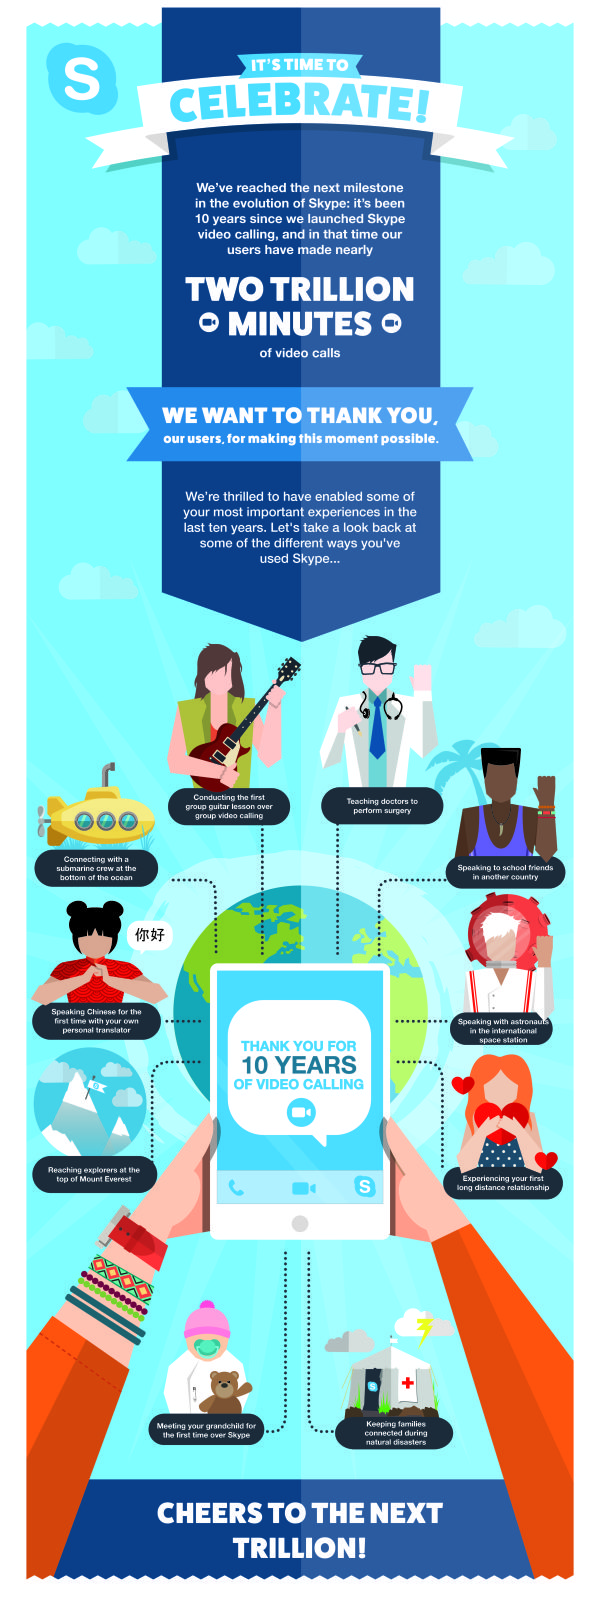 Skype 10 years of video calling infographic